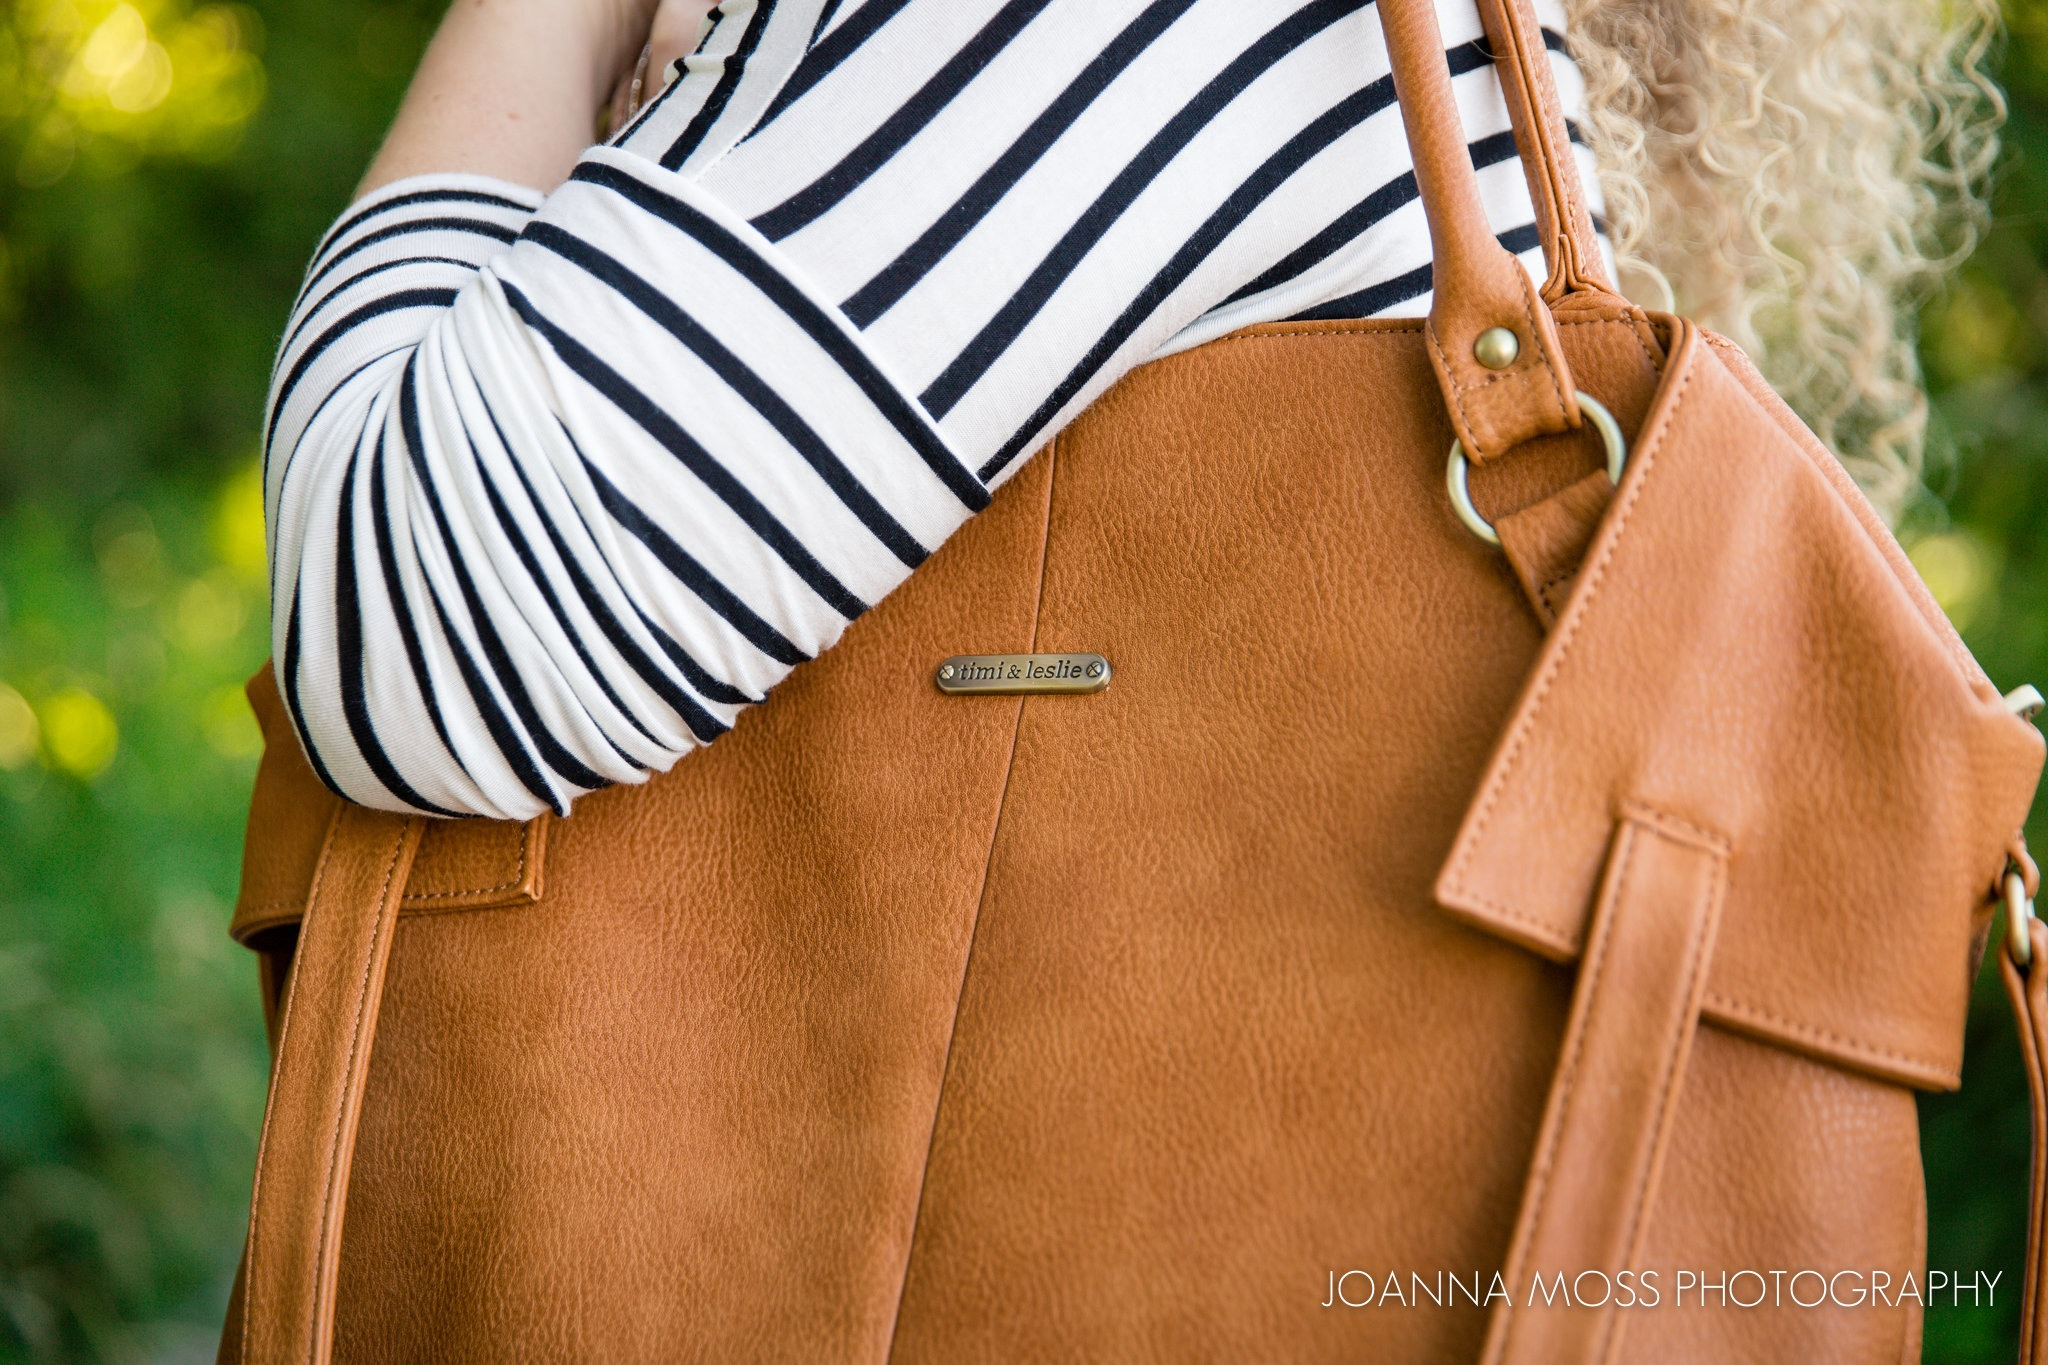 View More: http://joannamossphotography.pass.us/little-miss-mama